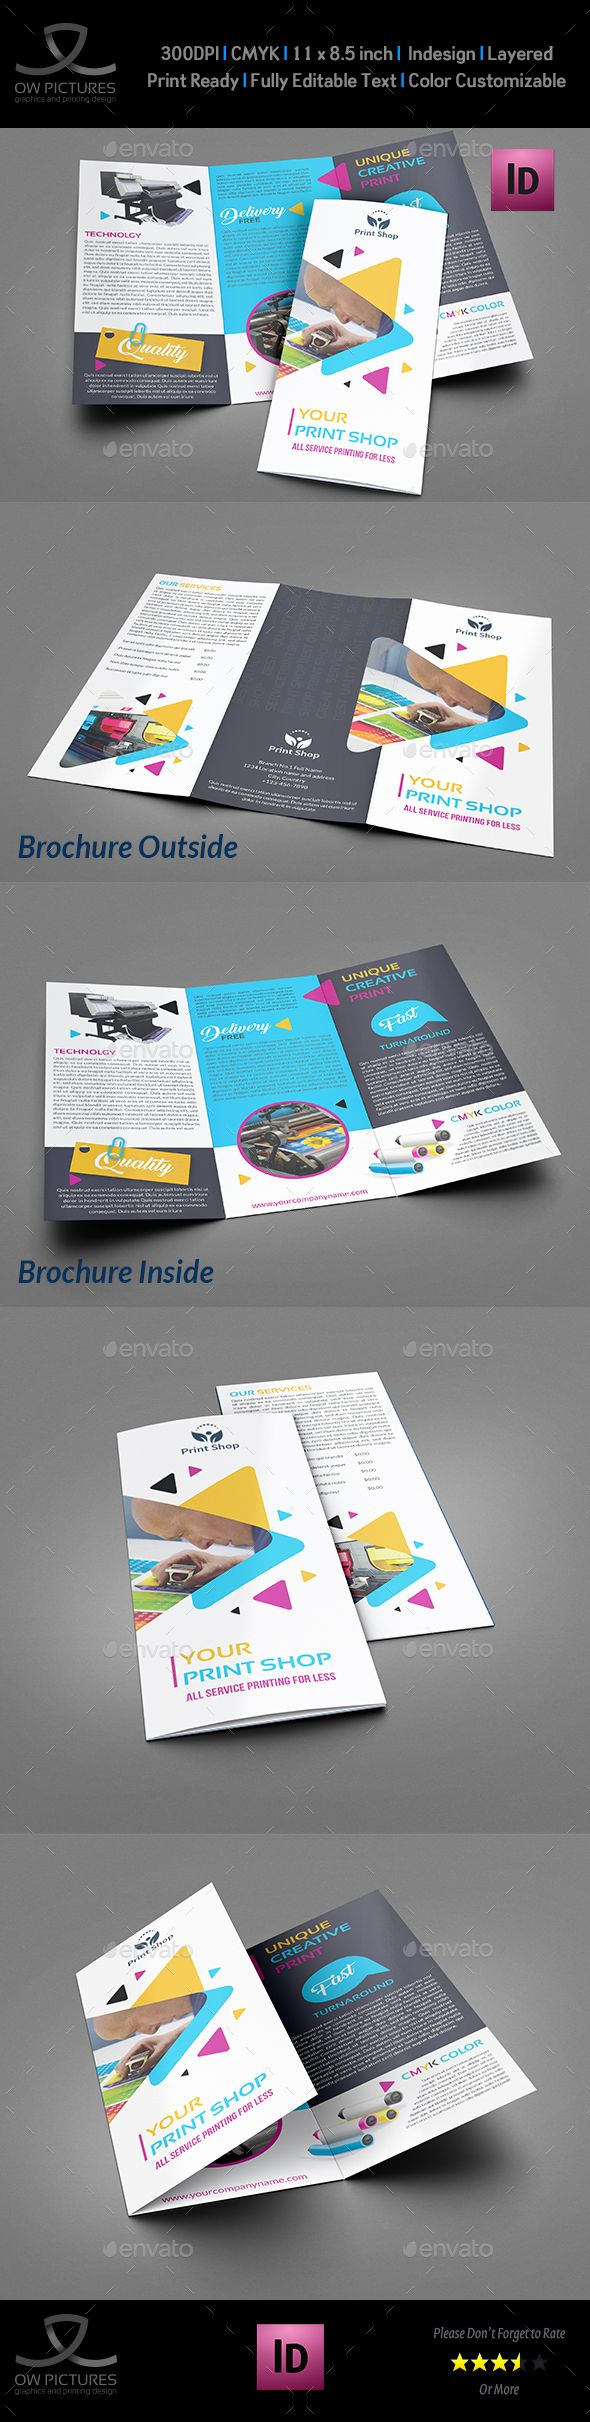 Print Shop Tri-Fold Brochure Template InDesign INDD. Download here: http://graphicriver.net/item/print-shop-trifold-brochure-template/16301812?ref=ksioks